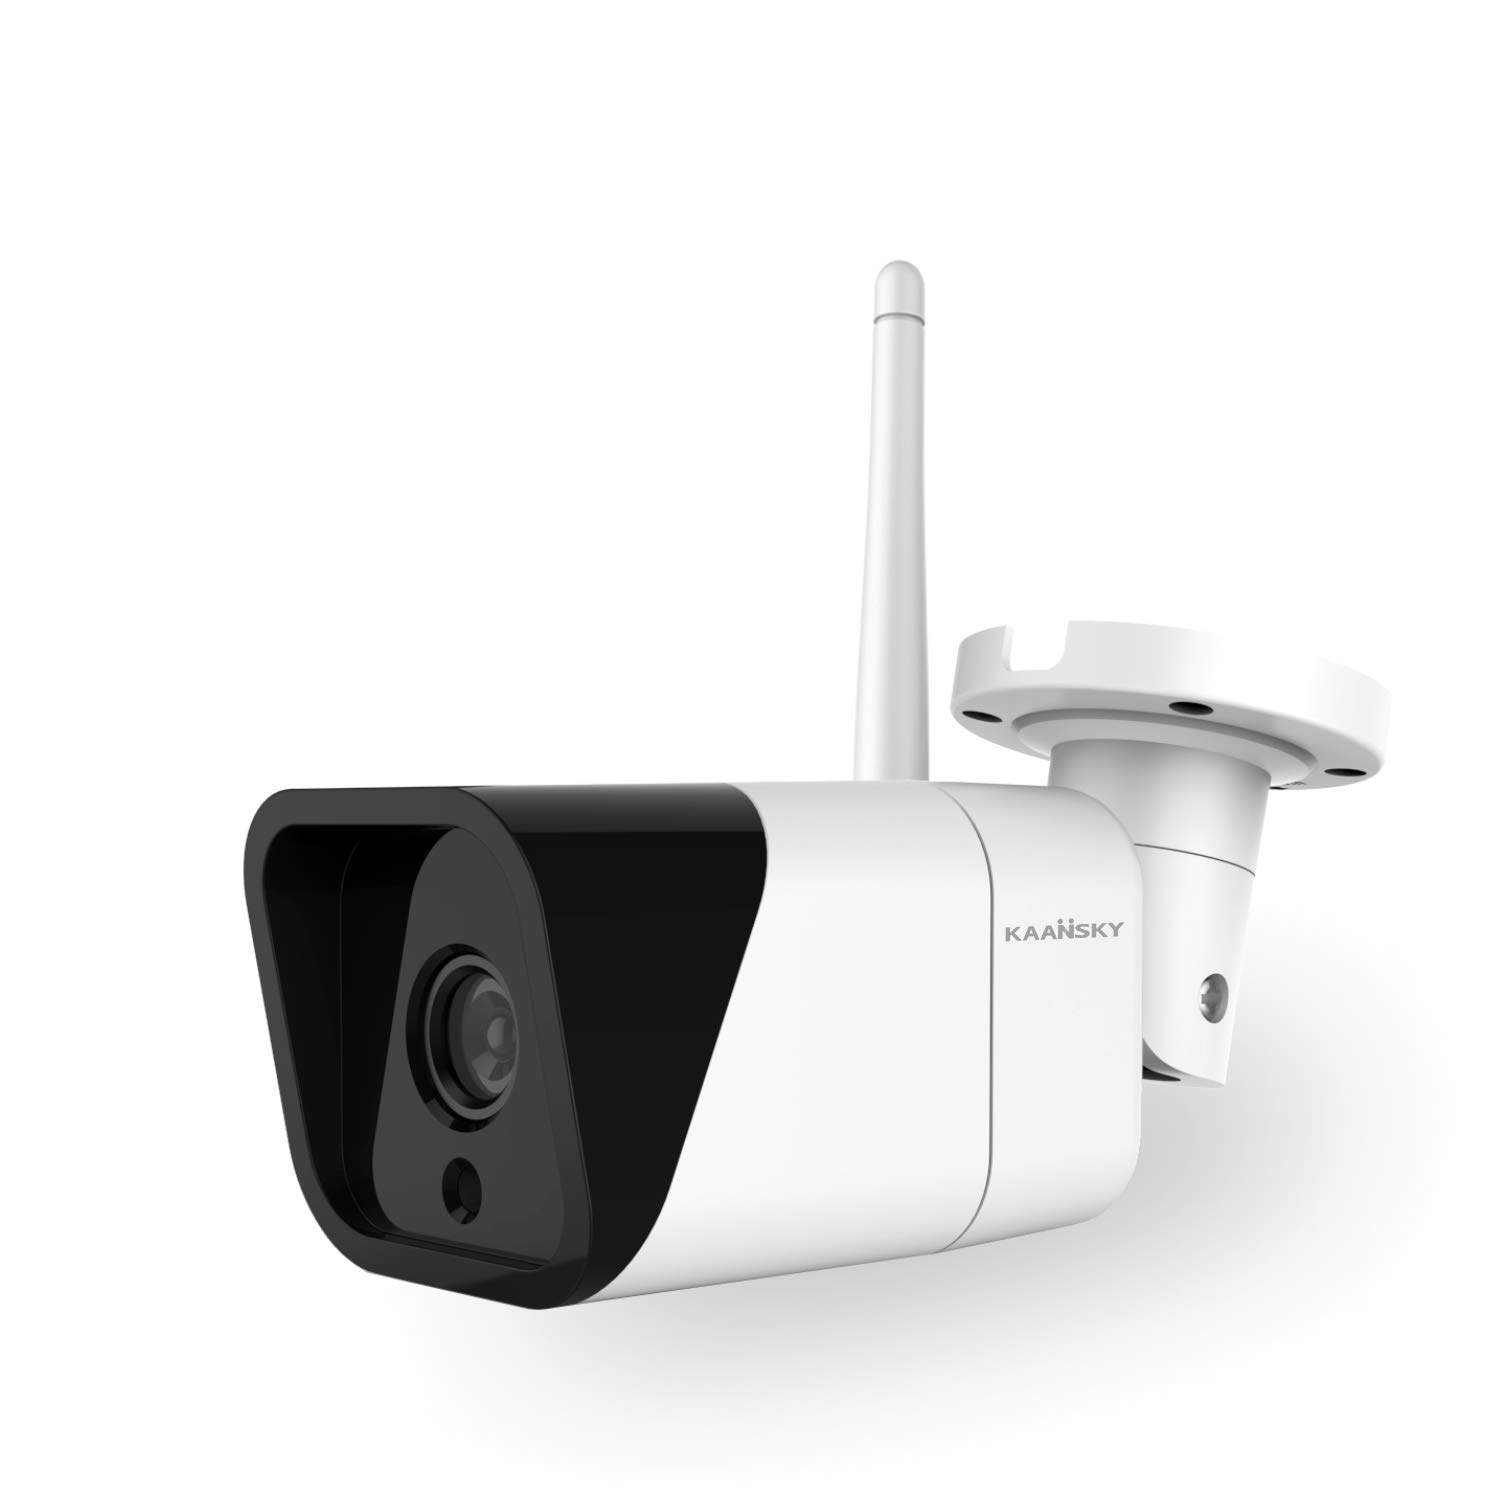 KAANSKY K4 Outdoor WiFi Wired Security Camera HD1080P Waterproof IP66 Mount Bullet Surveillance Camera with Motion Detection& Night Vision&Max 128g SD Card with 3-Meter Power Cord Smart Alert Monitor